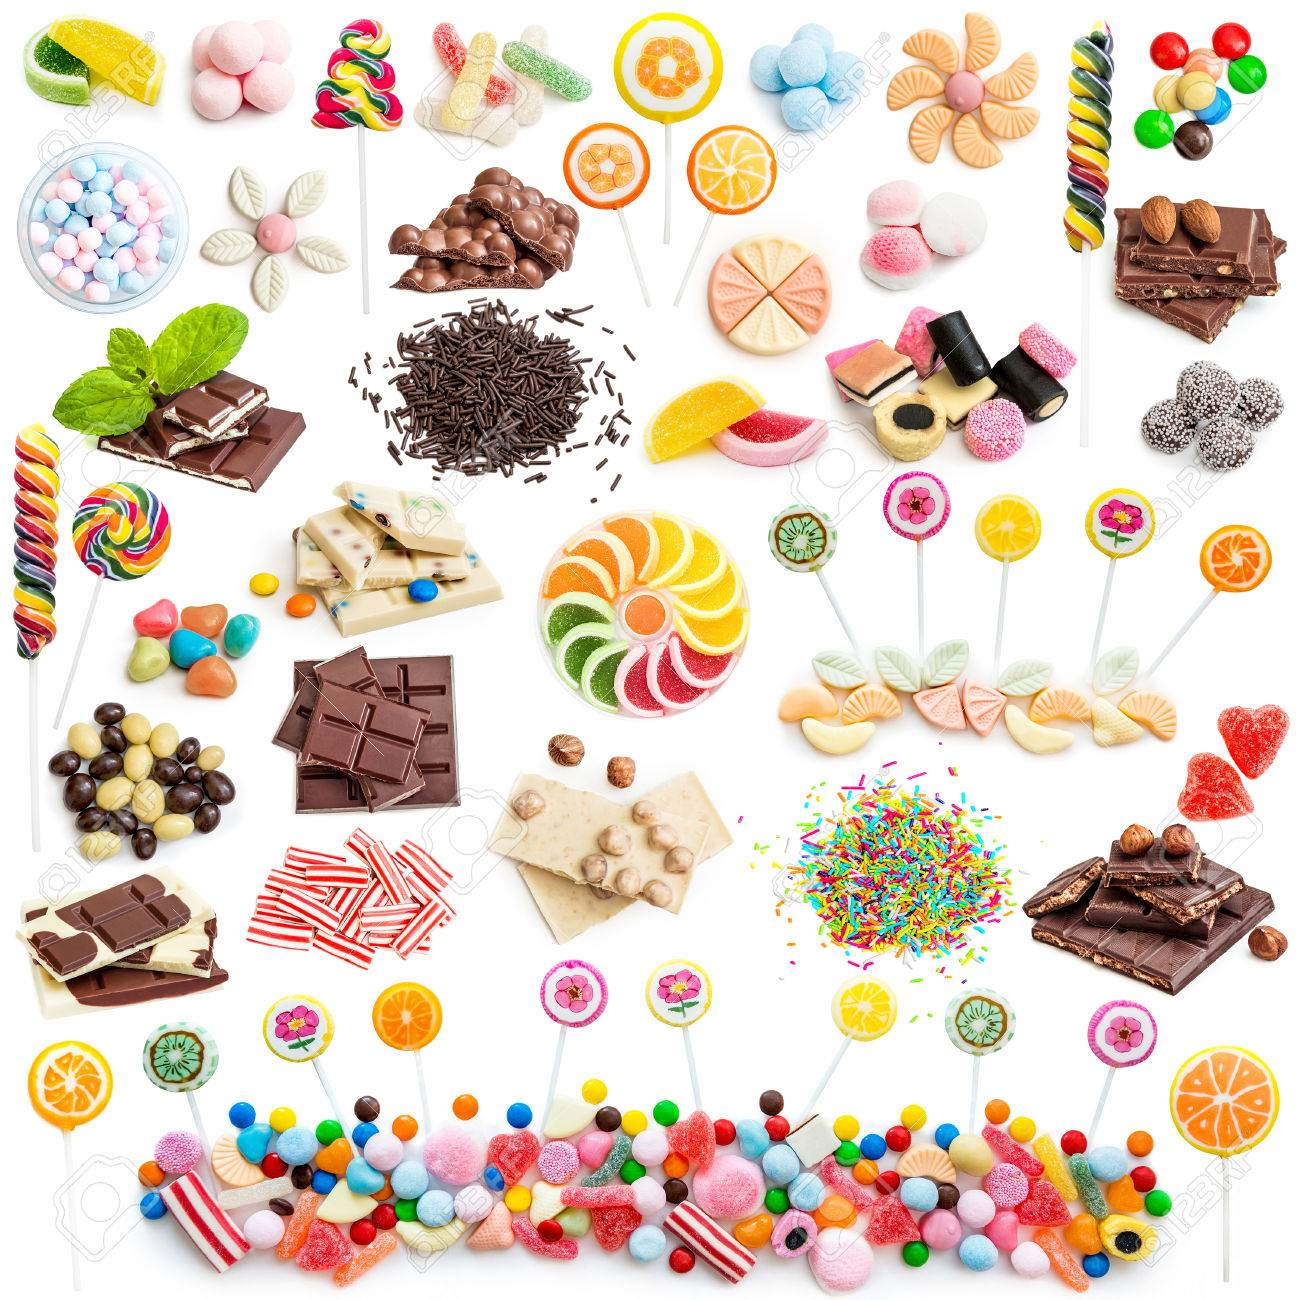 Collage of white and milk chocolate and candies isolated on white background - 44145903